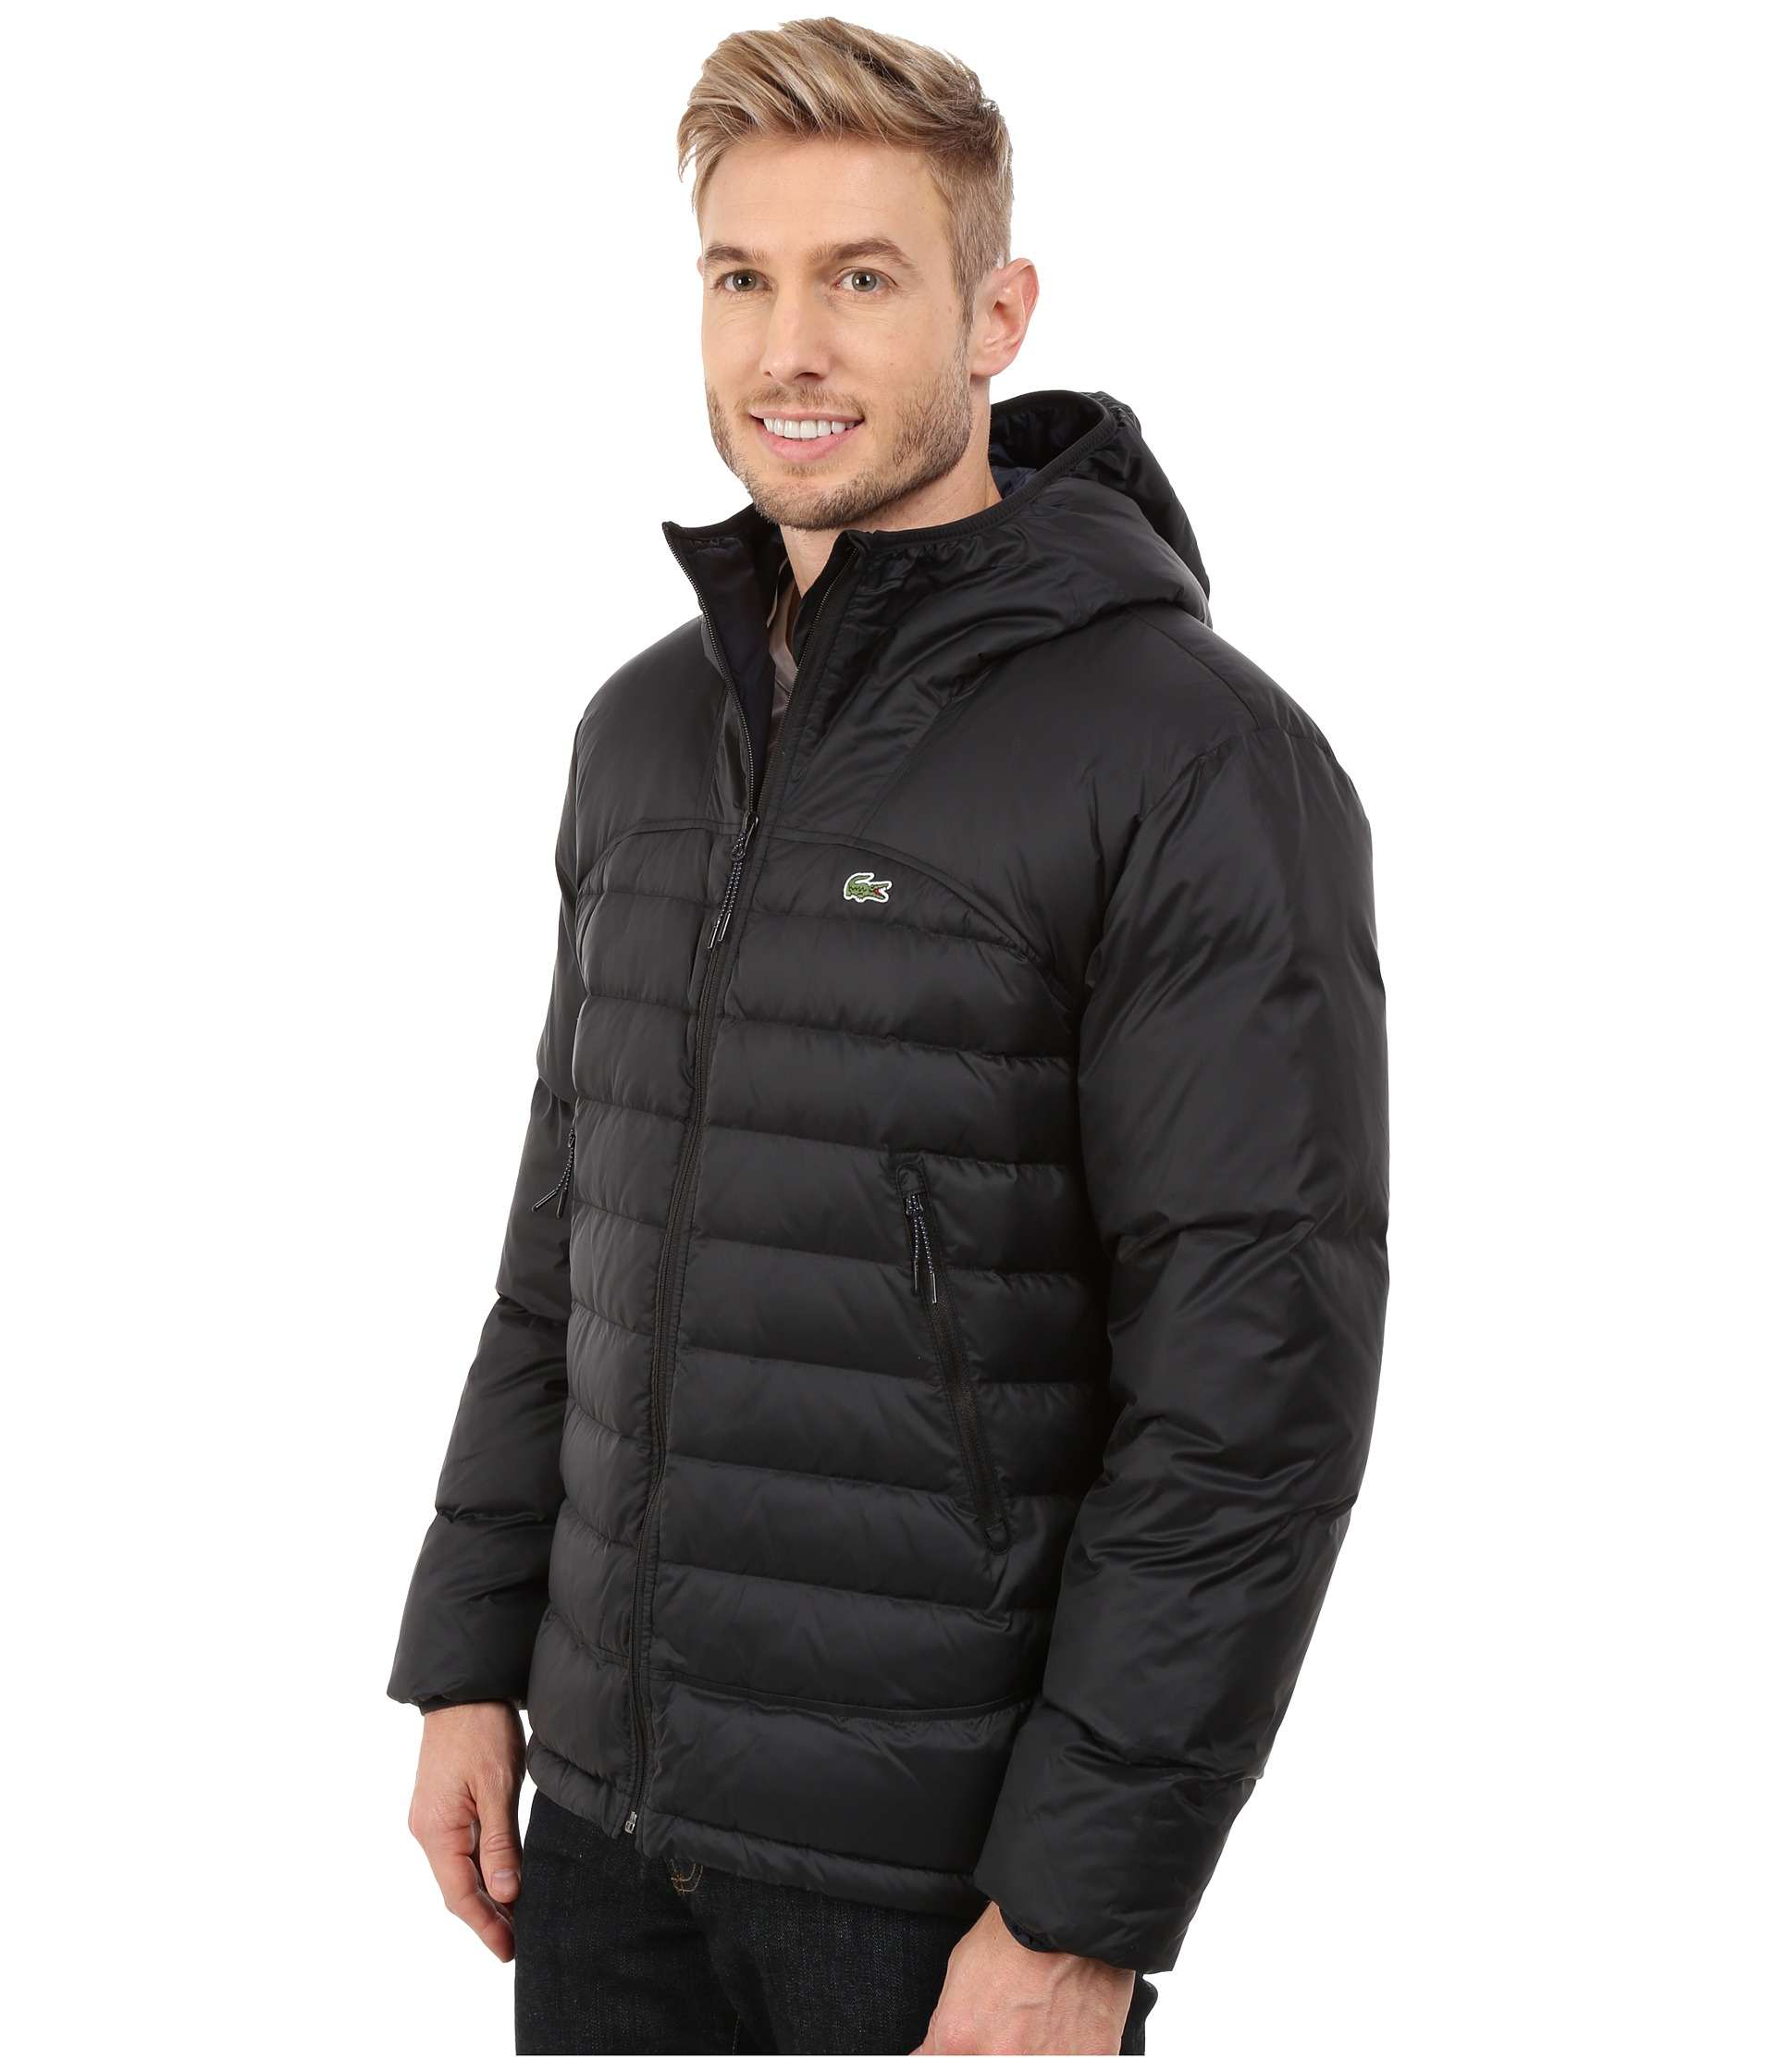 Lyst Lacoste Light Weight Packable Down Jacket In Black